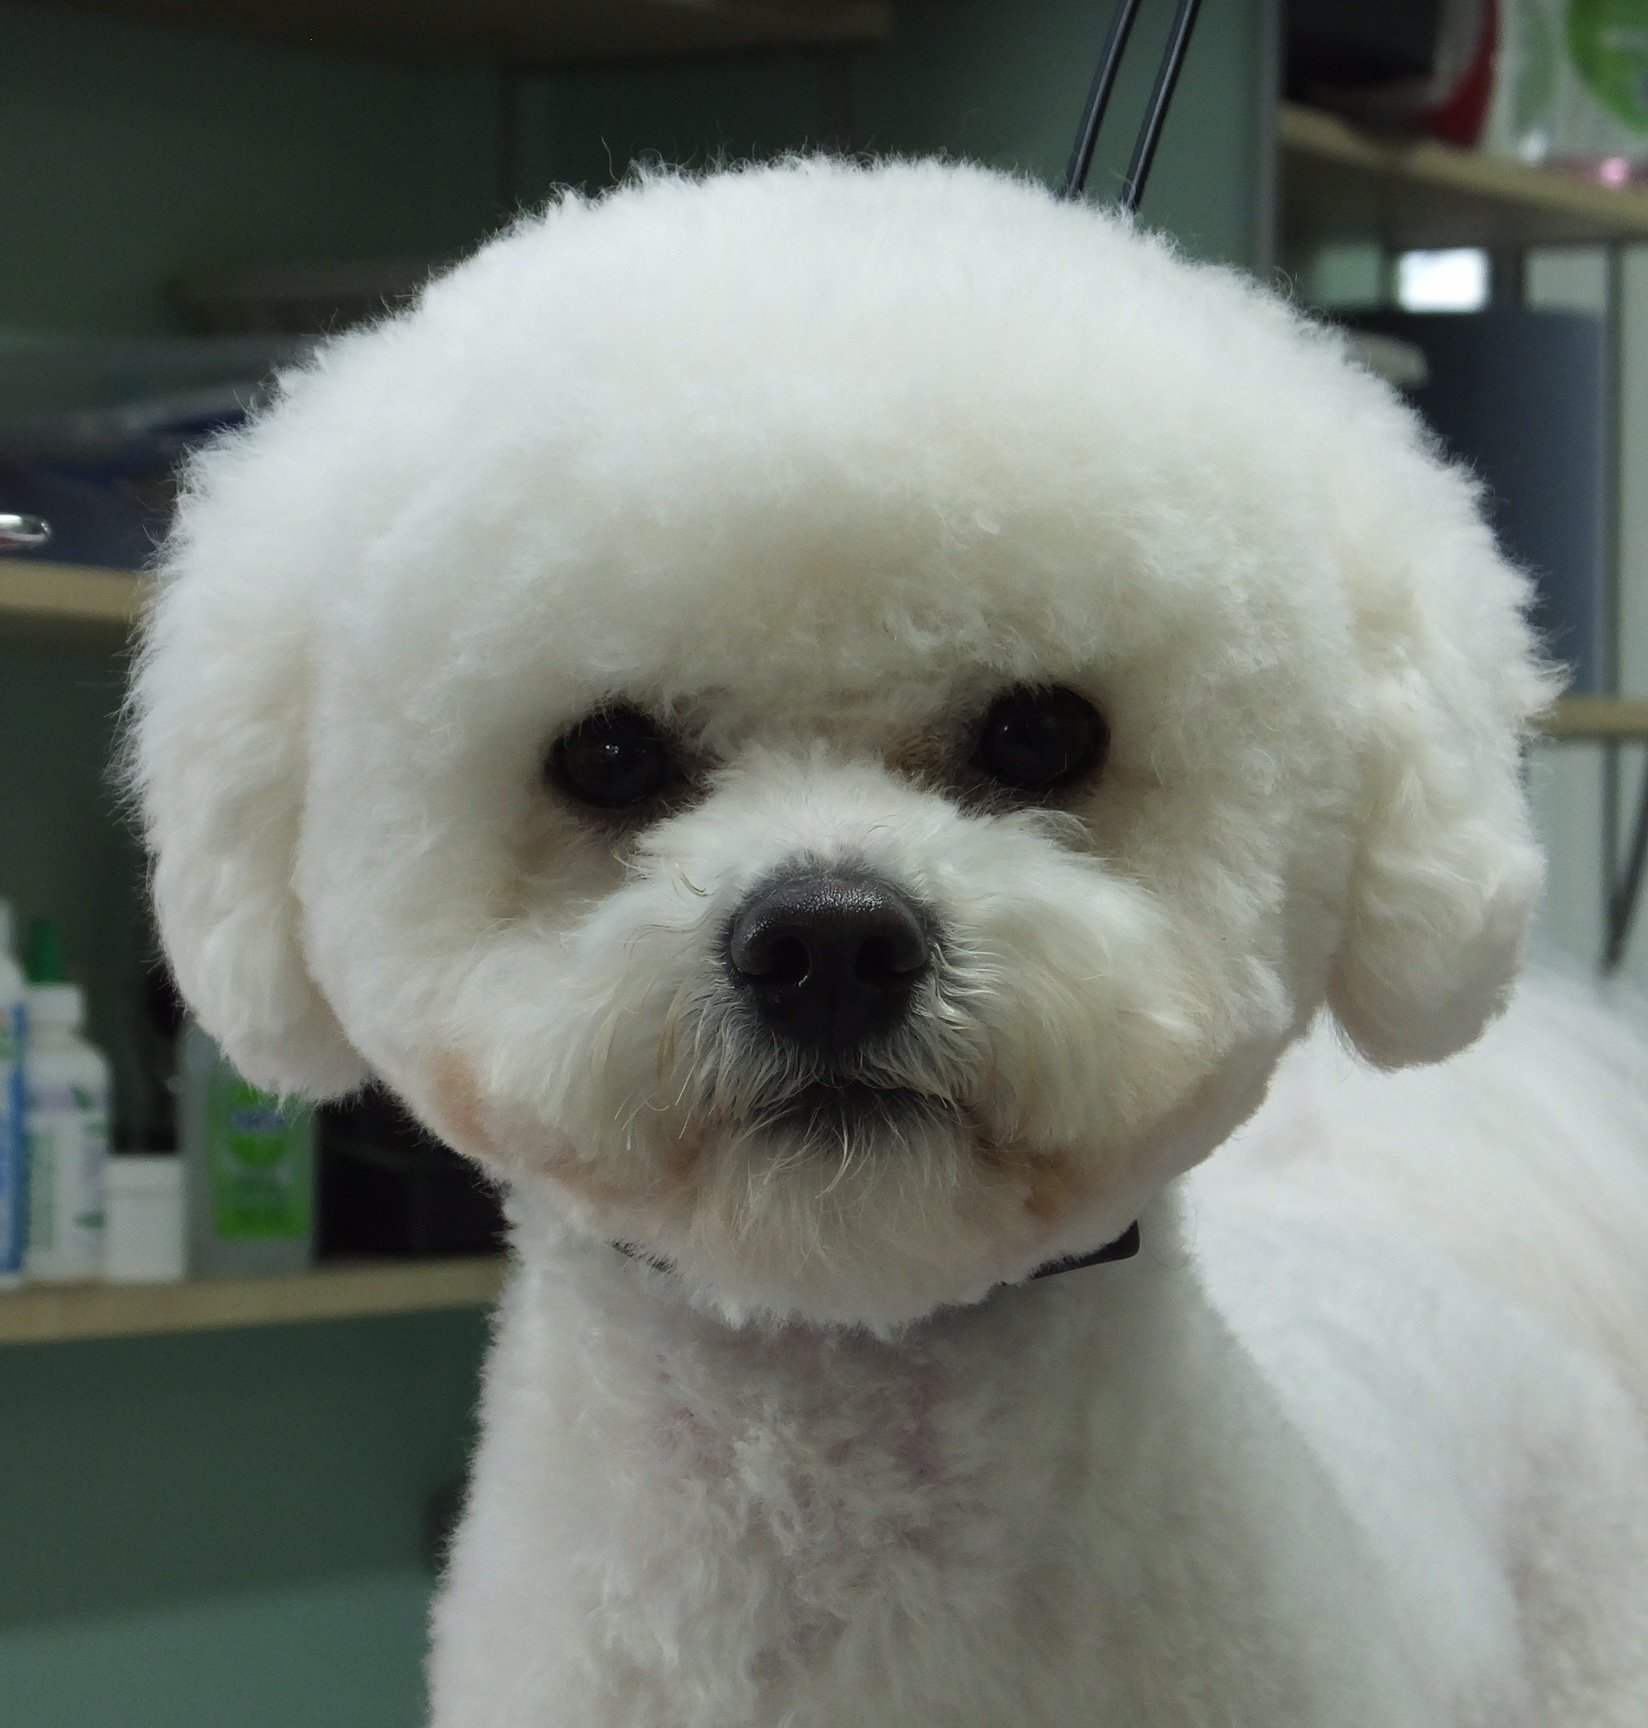 White poodle grooming